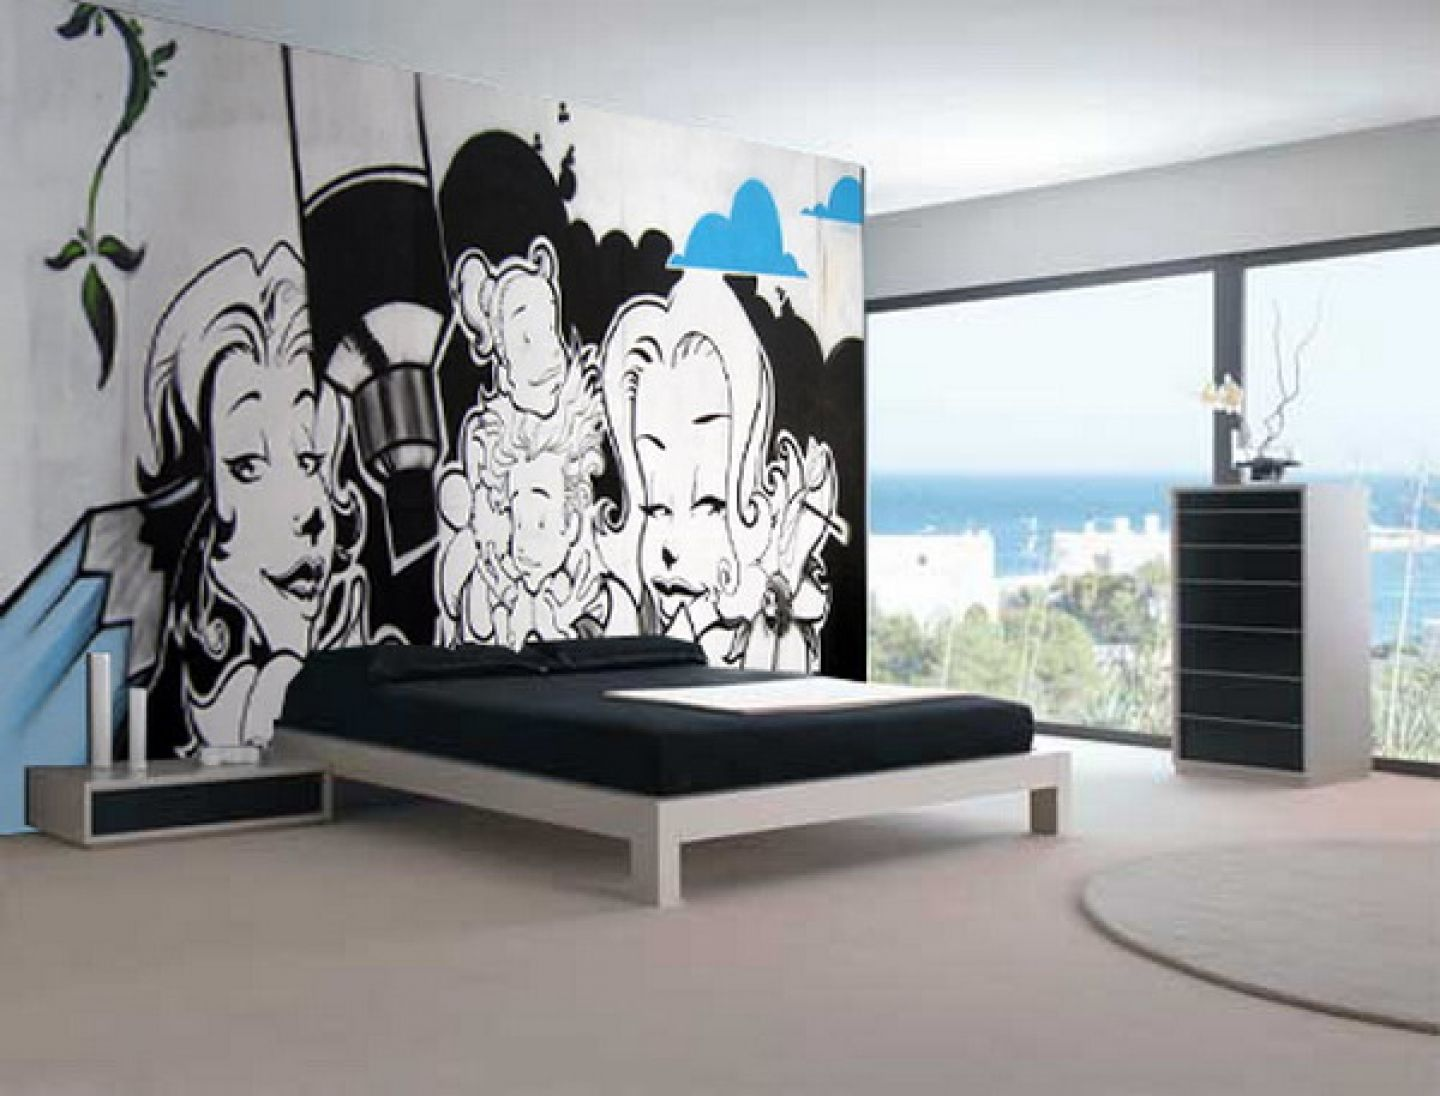 Cute Black White Graffiti Mural Teen Bedroom Interior Design IdeaCute Black White Graffiti Mural Teen Bedroom Interior Design Idea  . Graffiti Bedroom Decorating Ideas. Home Design Ideas